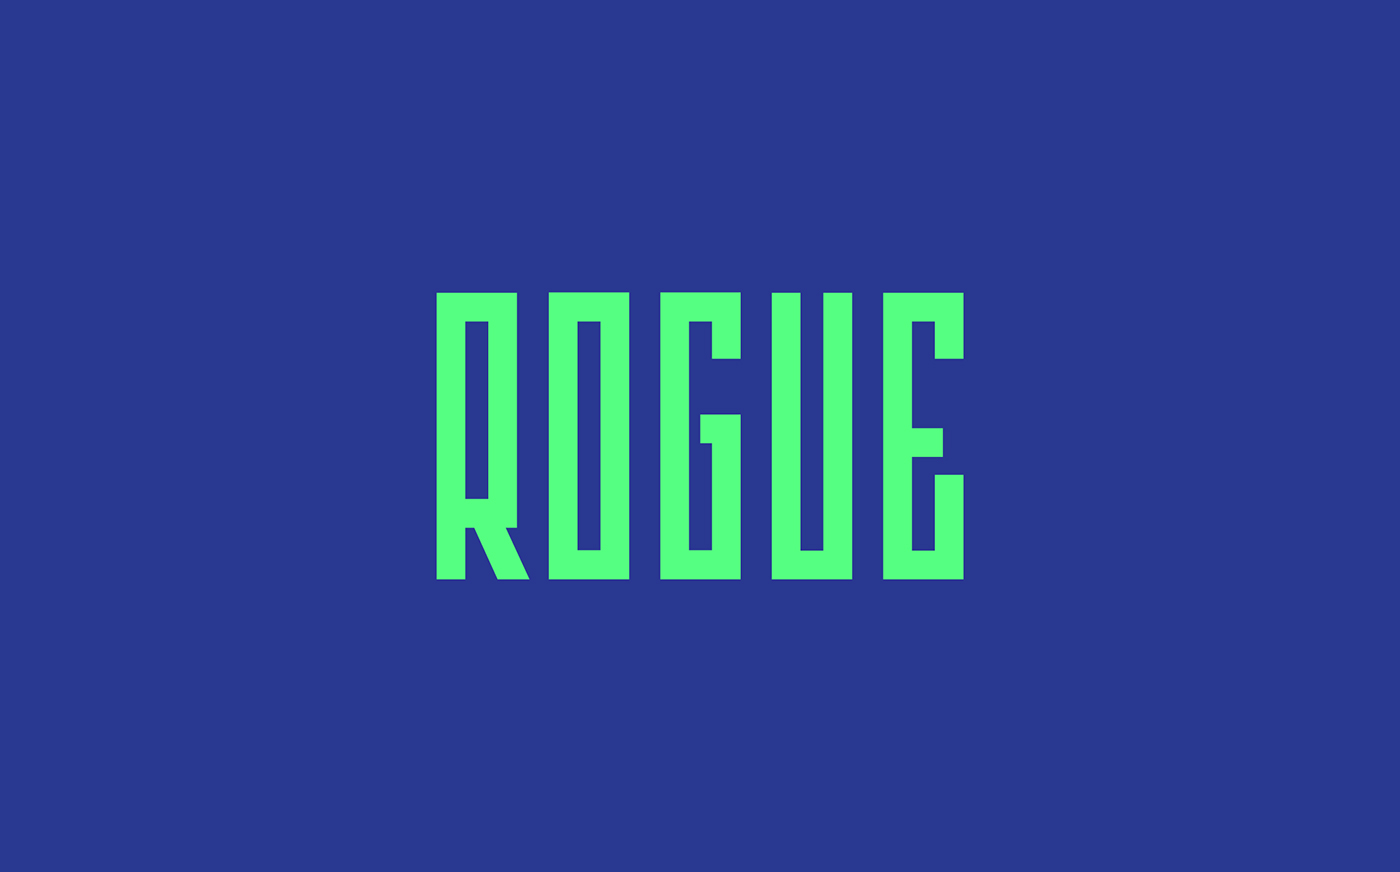 Free Download: Rogue Font